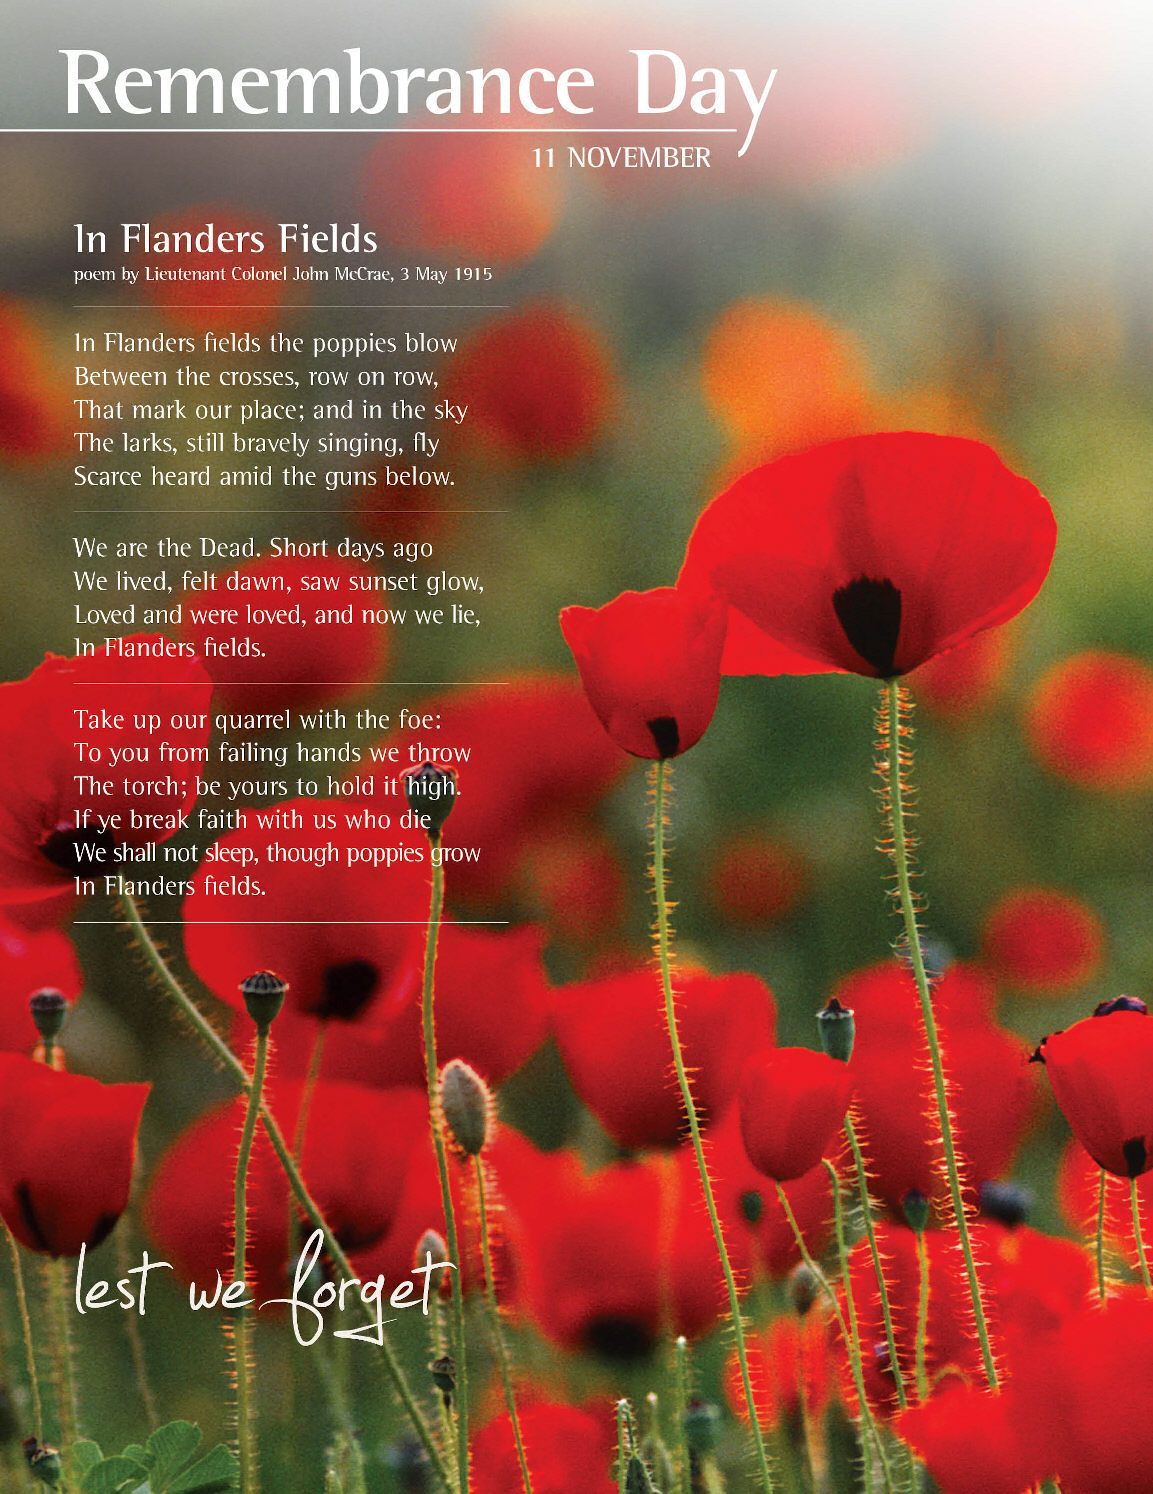 hight resolution of poppy clipart flanders field rememberance day remembrance cassiefairy image freeuse download